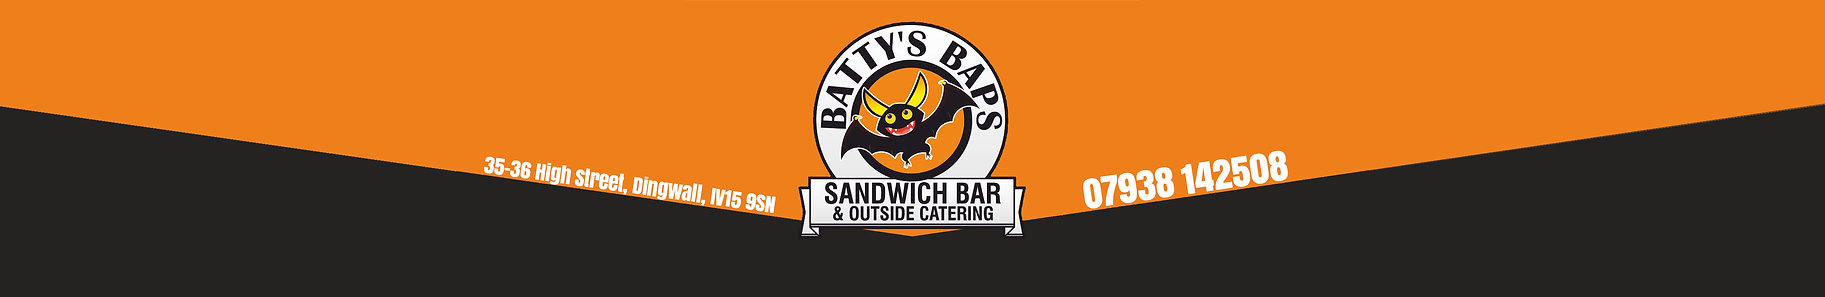 batty's baps sandwich bar & outside catering in the highlands